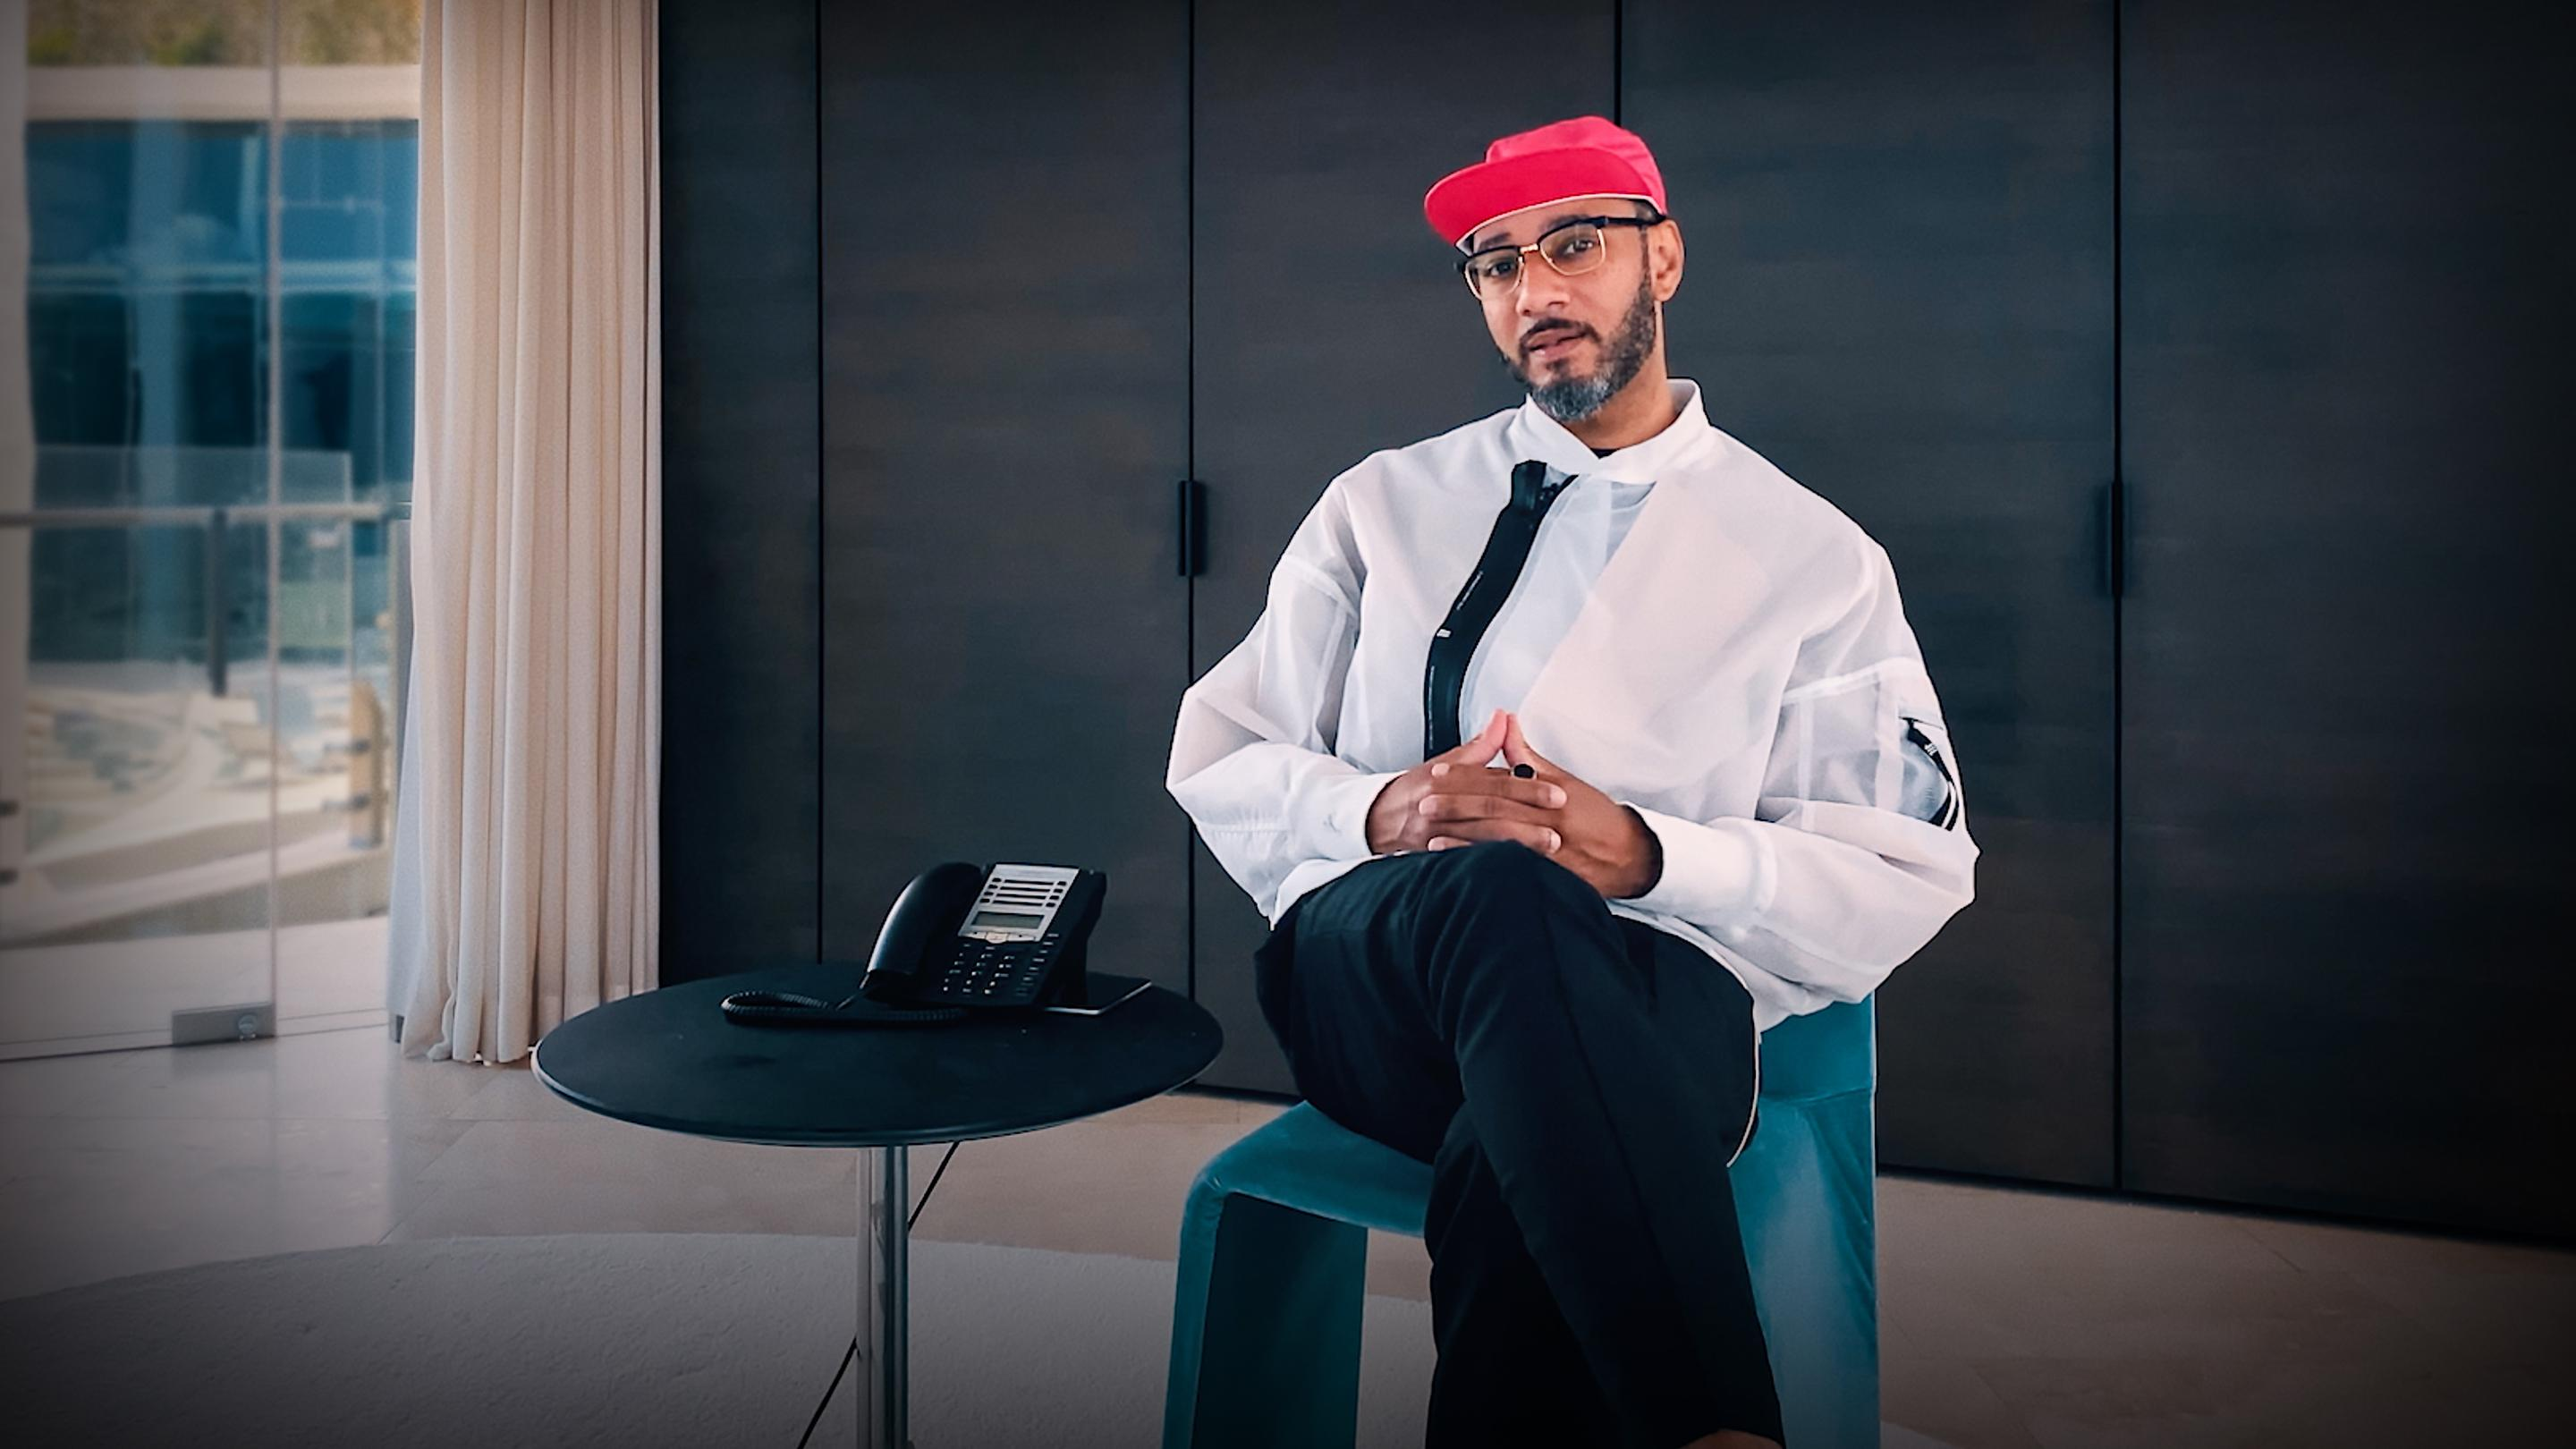 How to support and celebrate living artists | Swizz Beatz